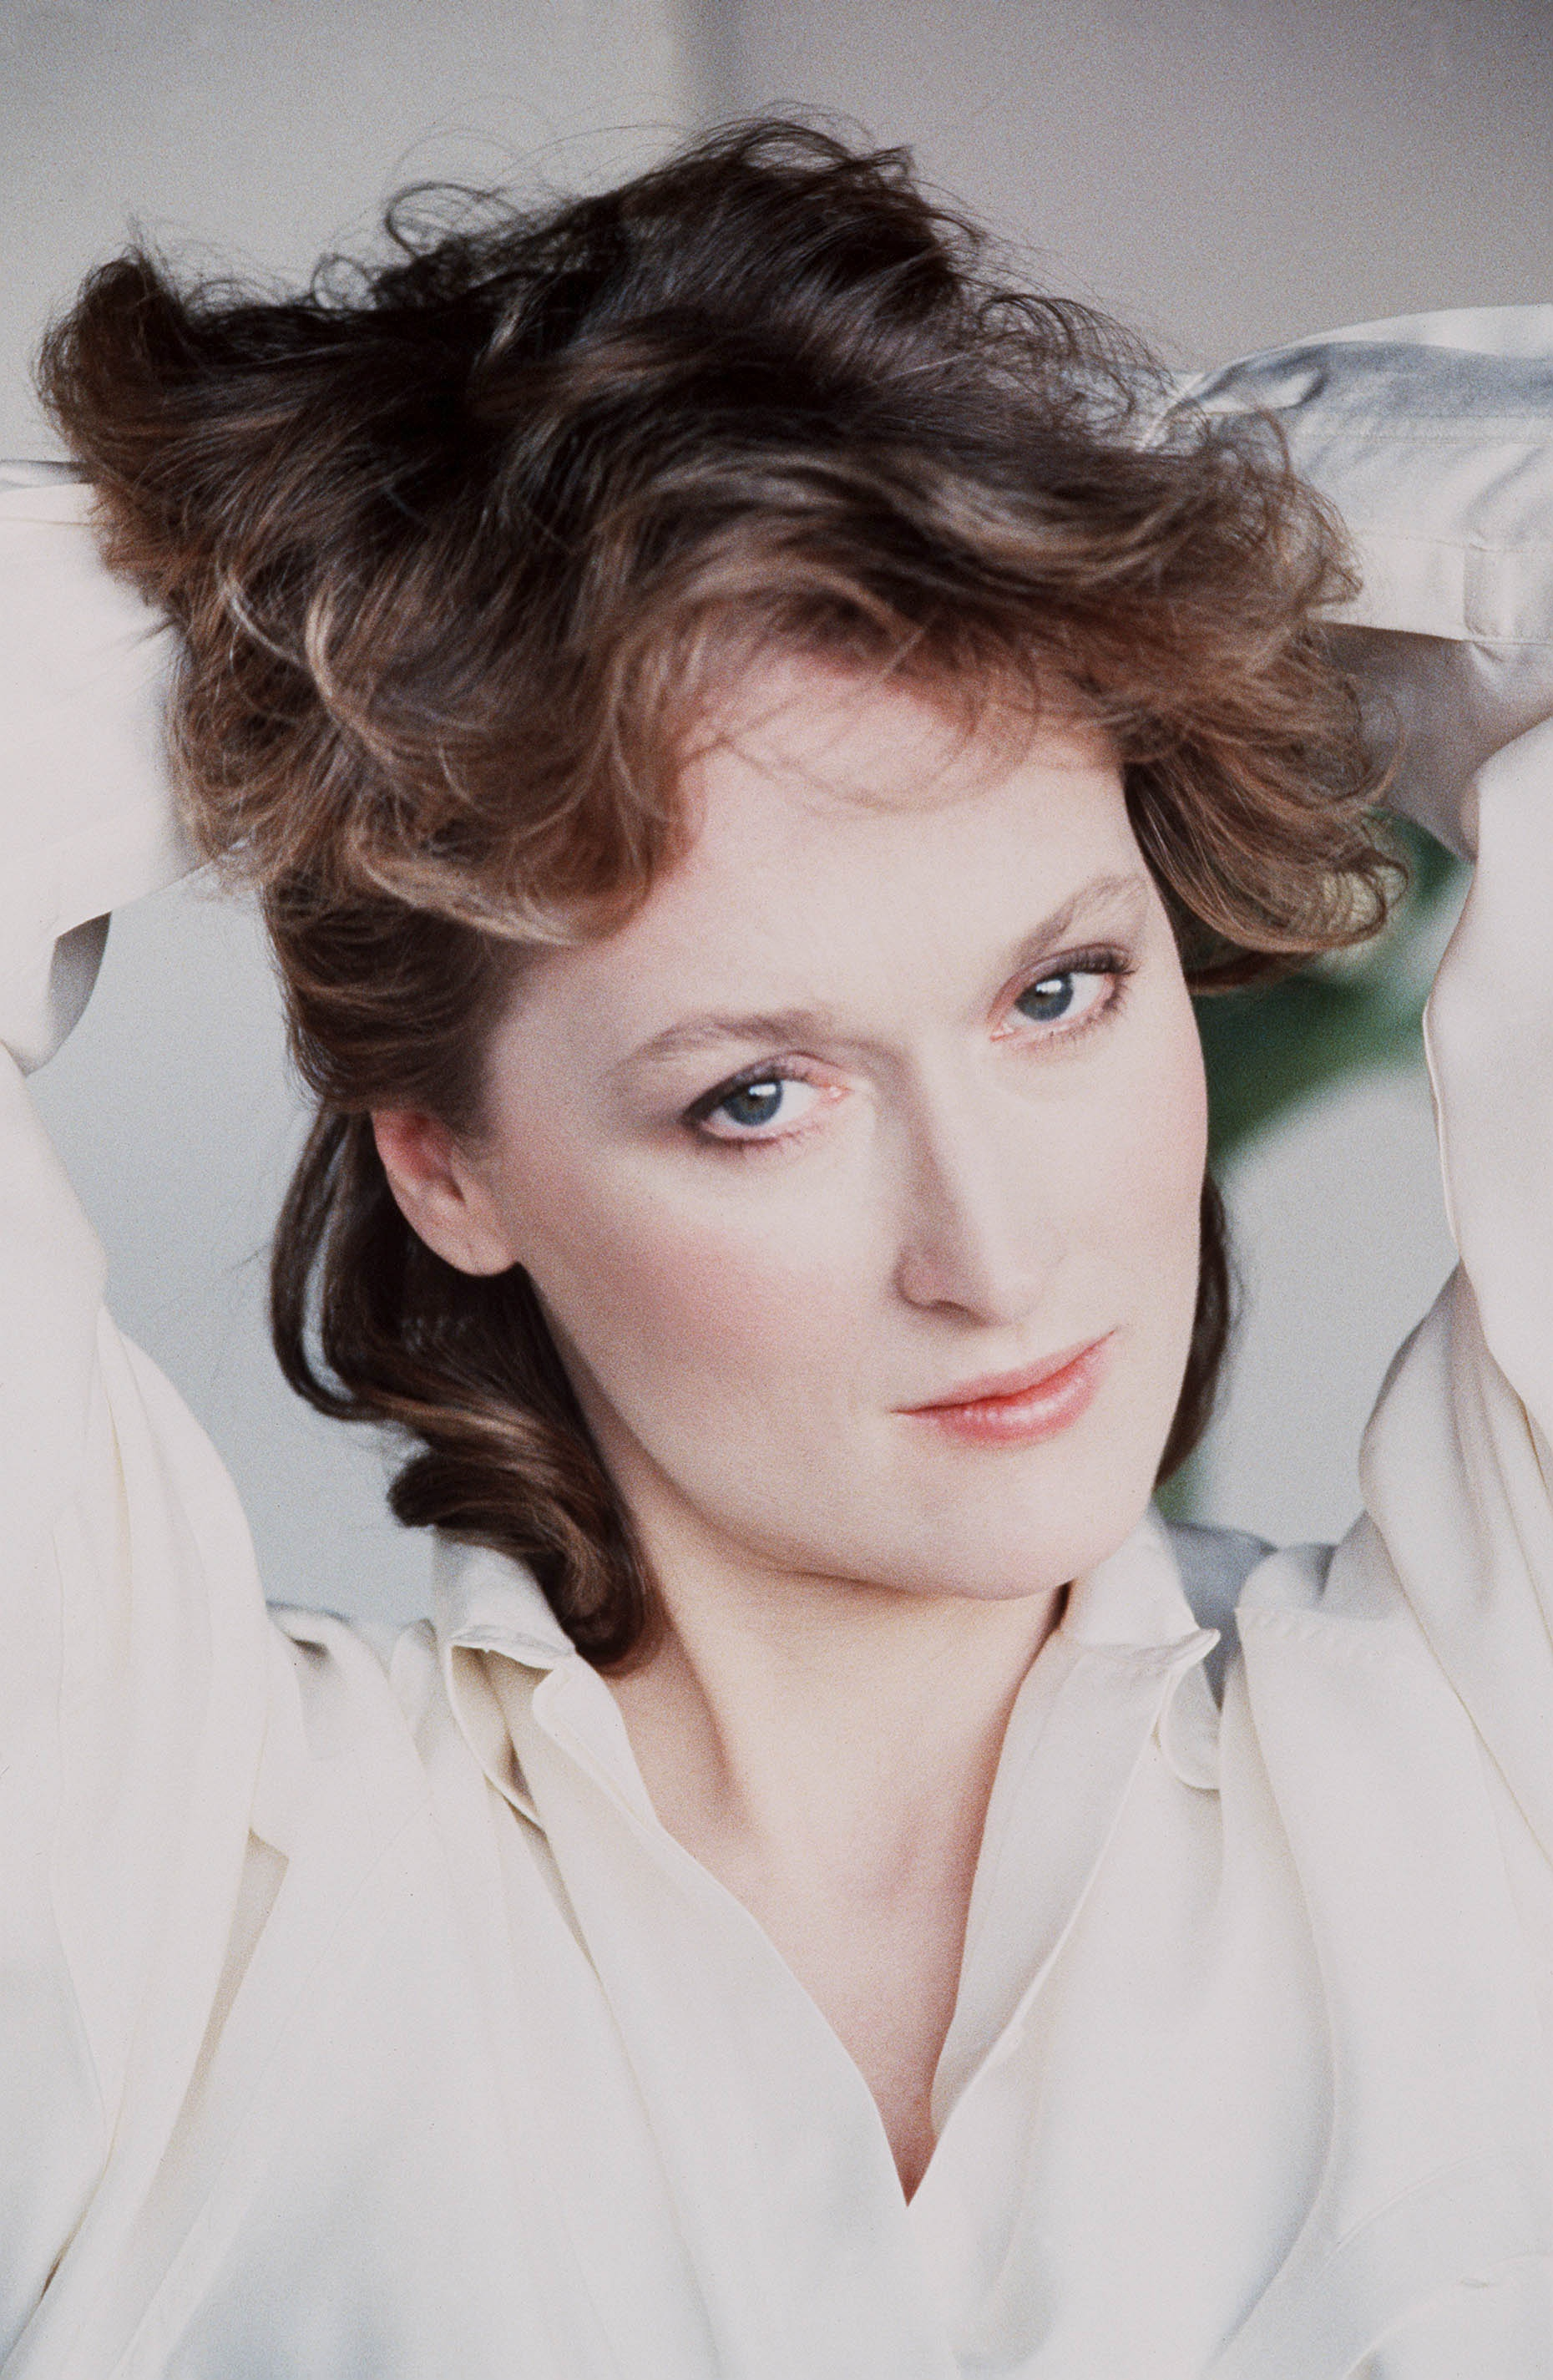 Meryl Streep - Wallpapers